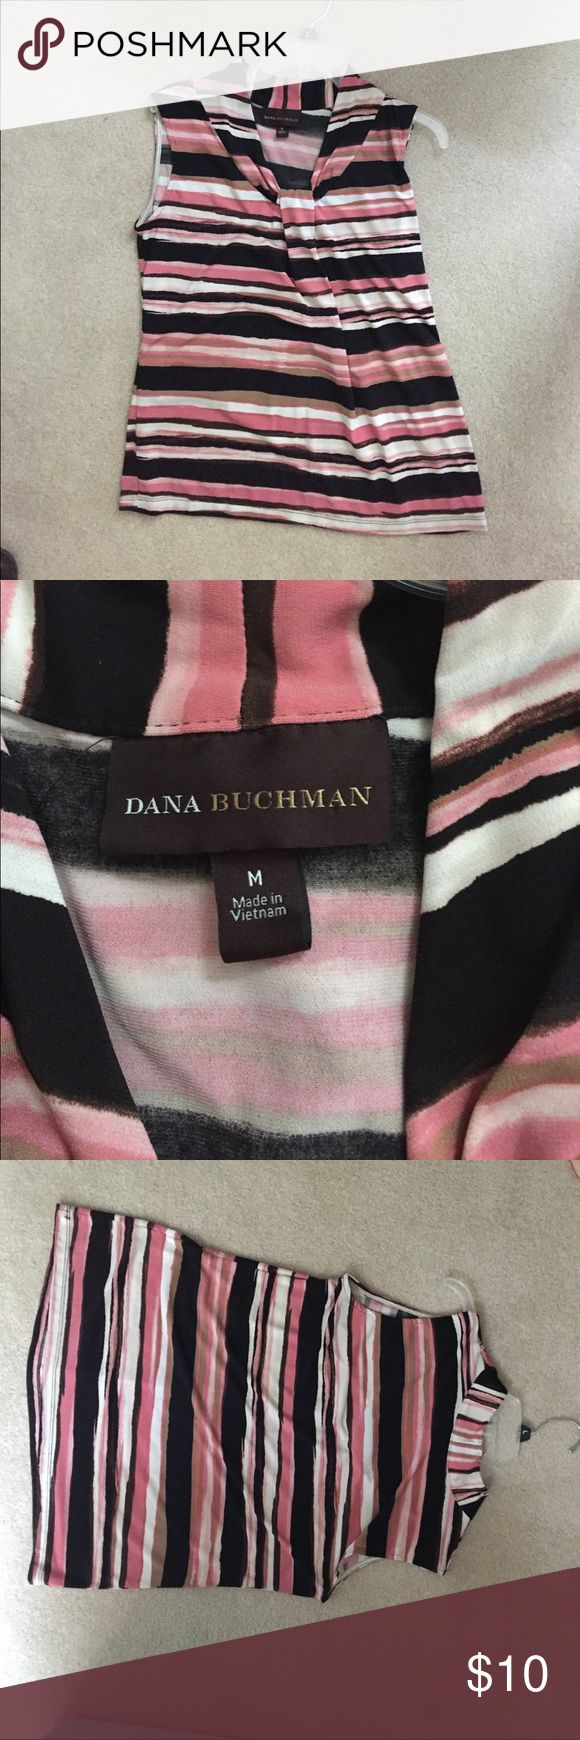 Dana Buchanan stripped, sleeveless dress blouse Size Medium - Dana Buchman - striped design, loose fitting.  PRODUCT FEATURES Release pleats V-neck Stretchy jersey construction FABRIC & CARE Polyester, spandex Machine wash Imported Dana Buchman Tops Blouses